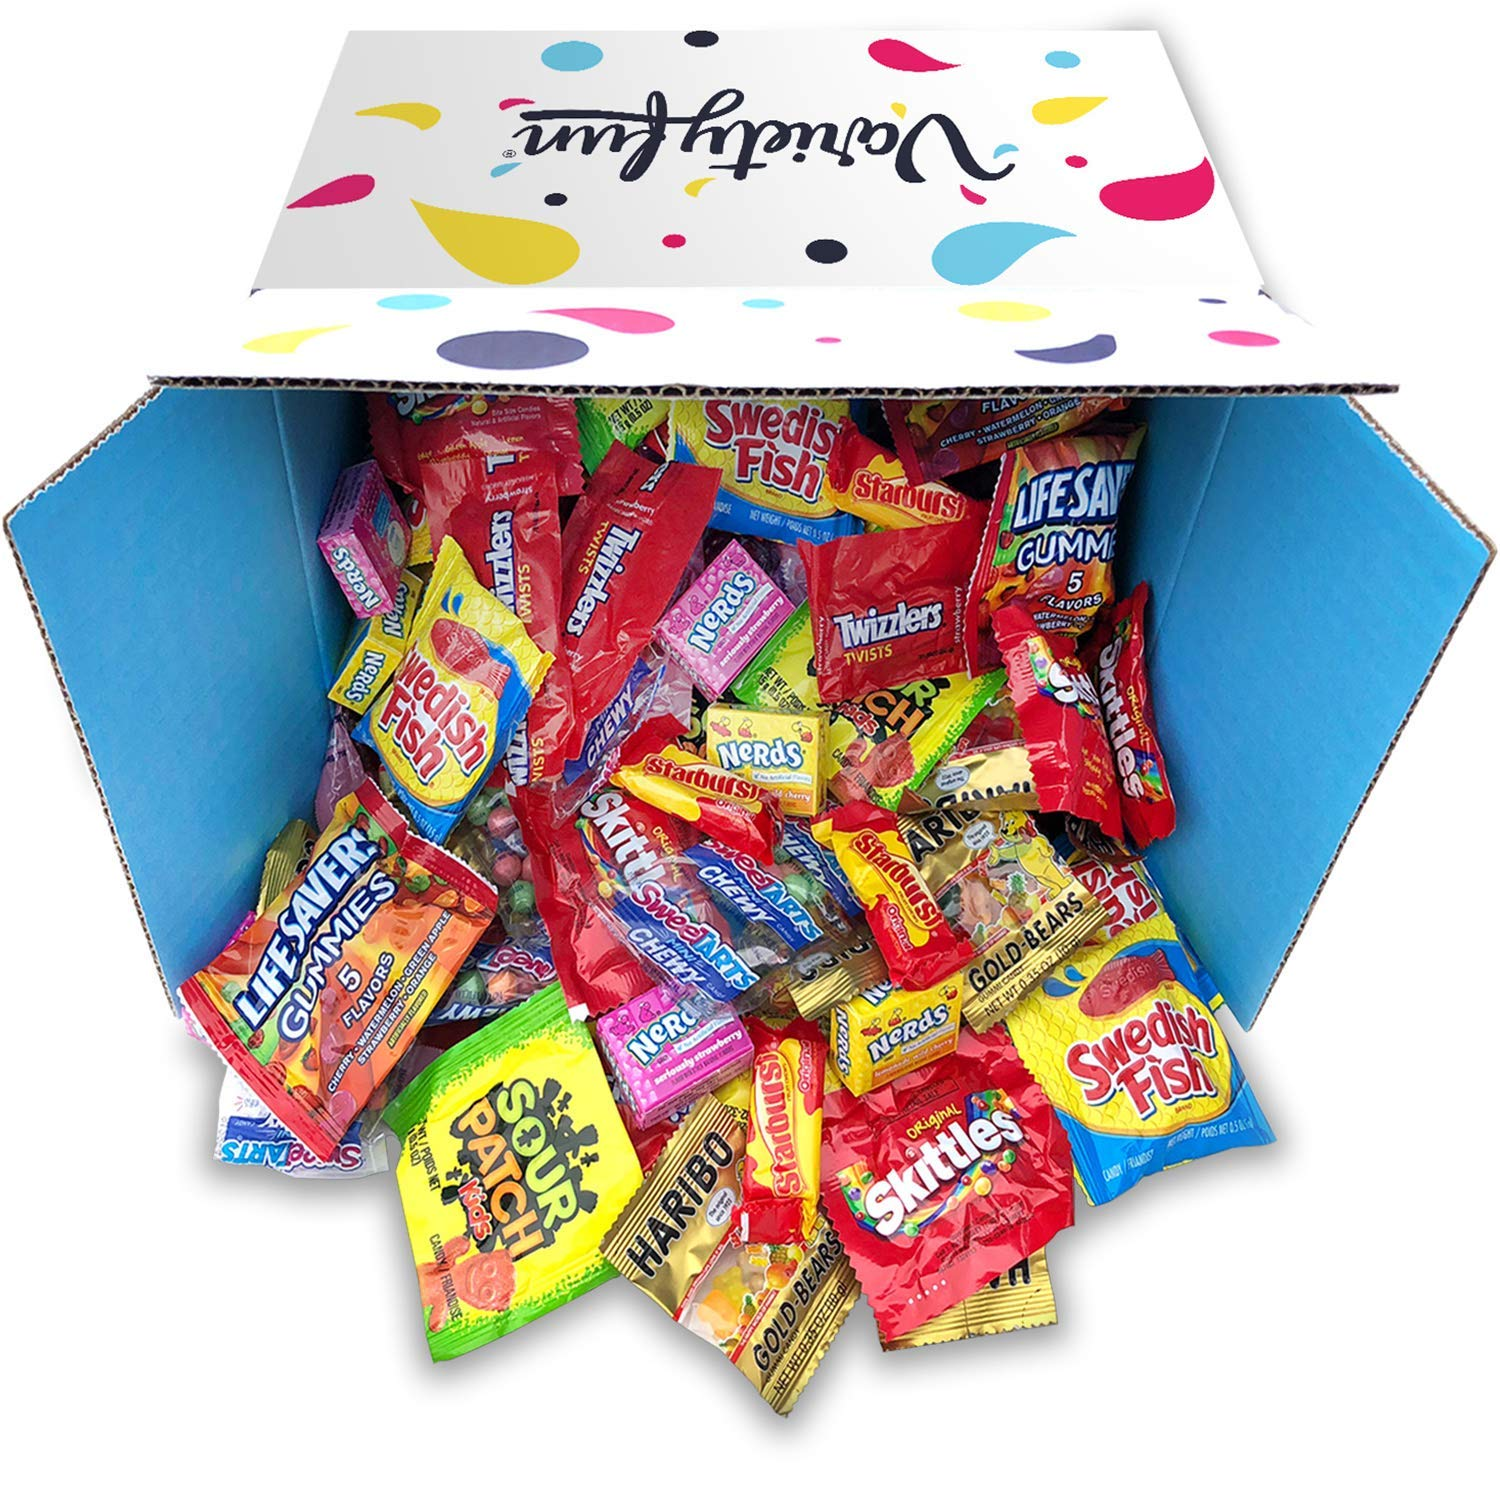 Candy Bulk Variety Pack Mixed Assortment by Variety Fun (288 oz)